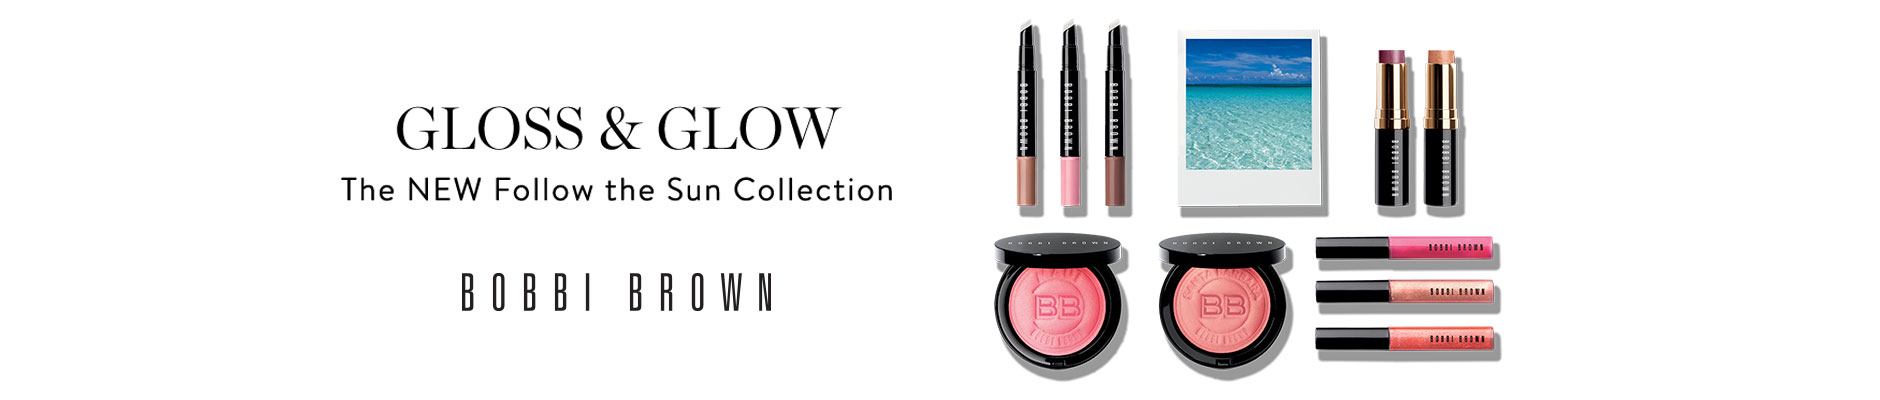 Gloss & Glow: The NEW Follow the Sun Collection - Bobbi Brown